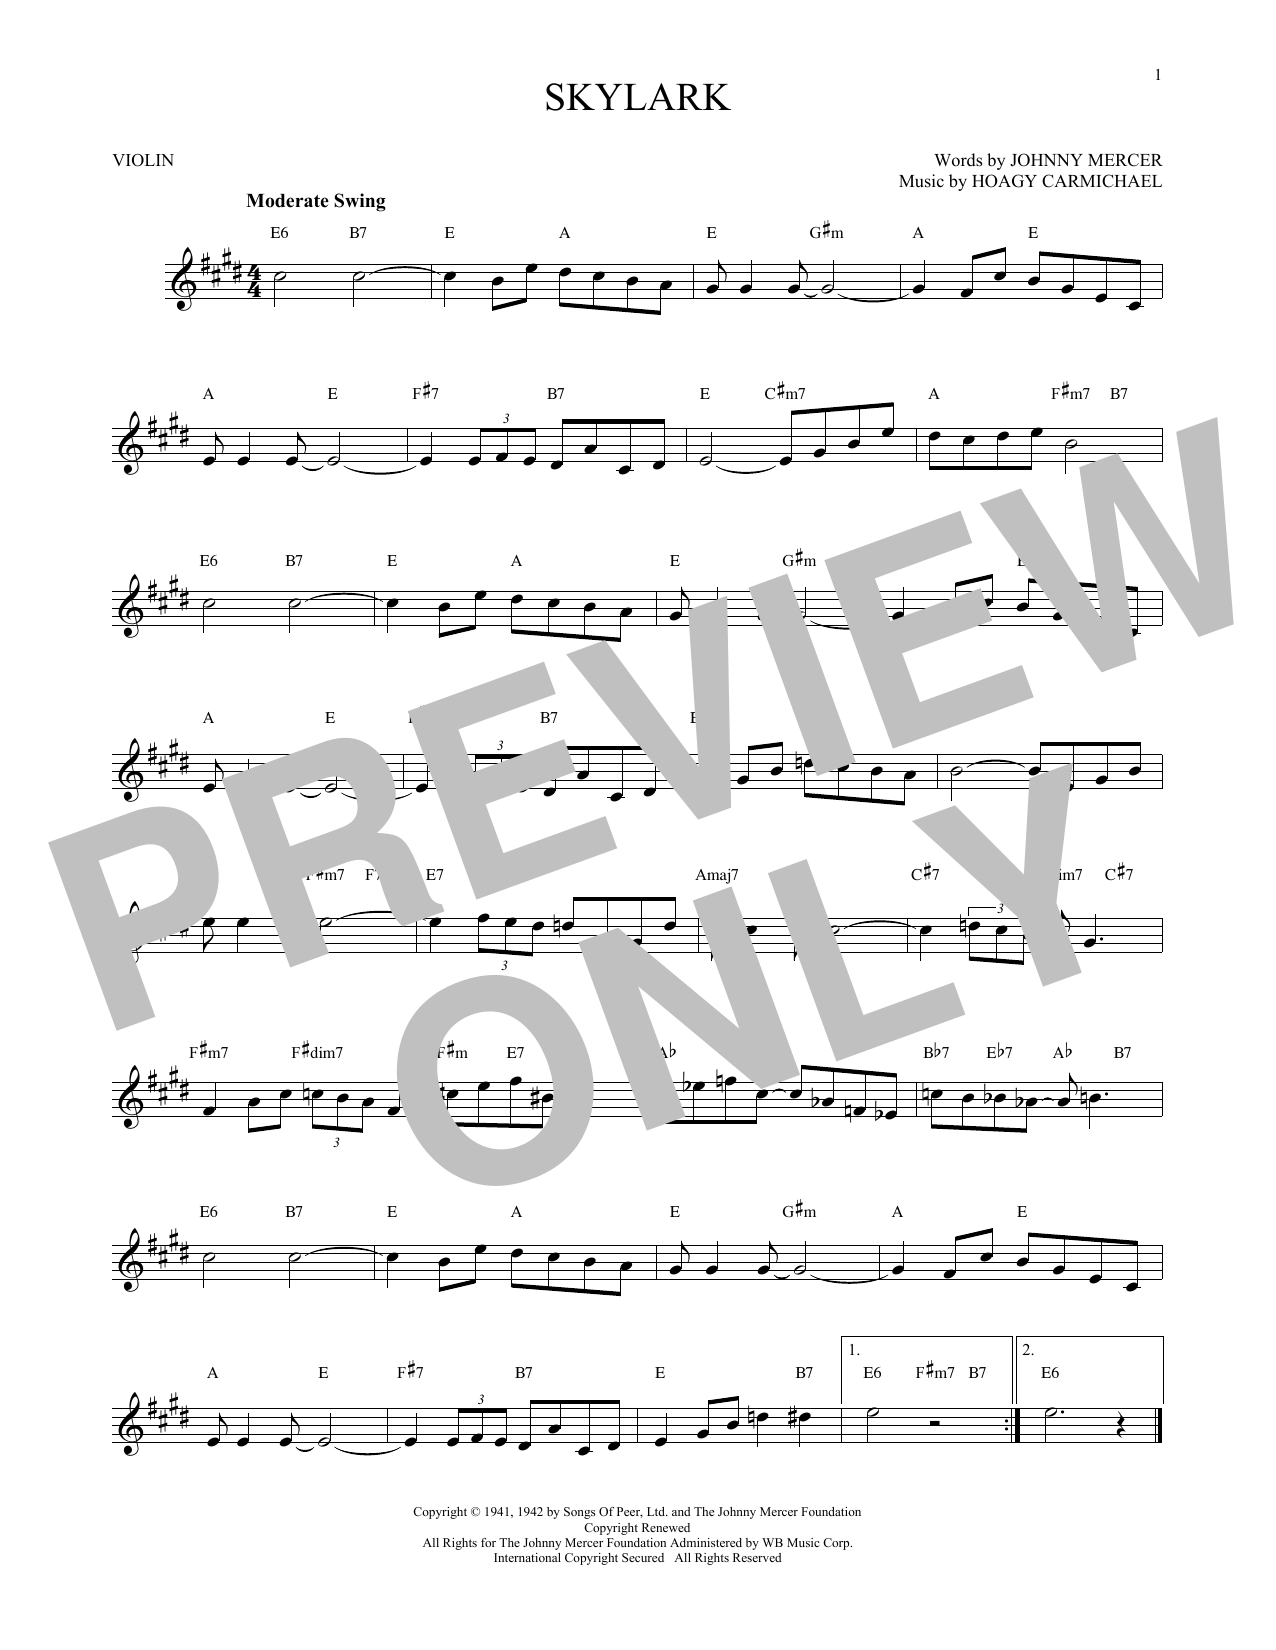 Hoagy Carmichael Skylark sheet music notes and chords. Download Printable PDF.